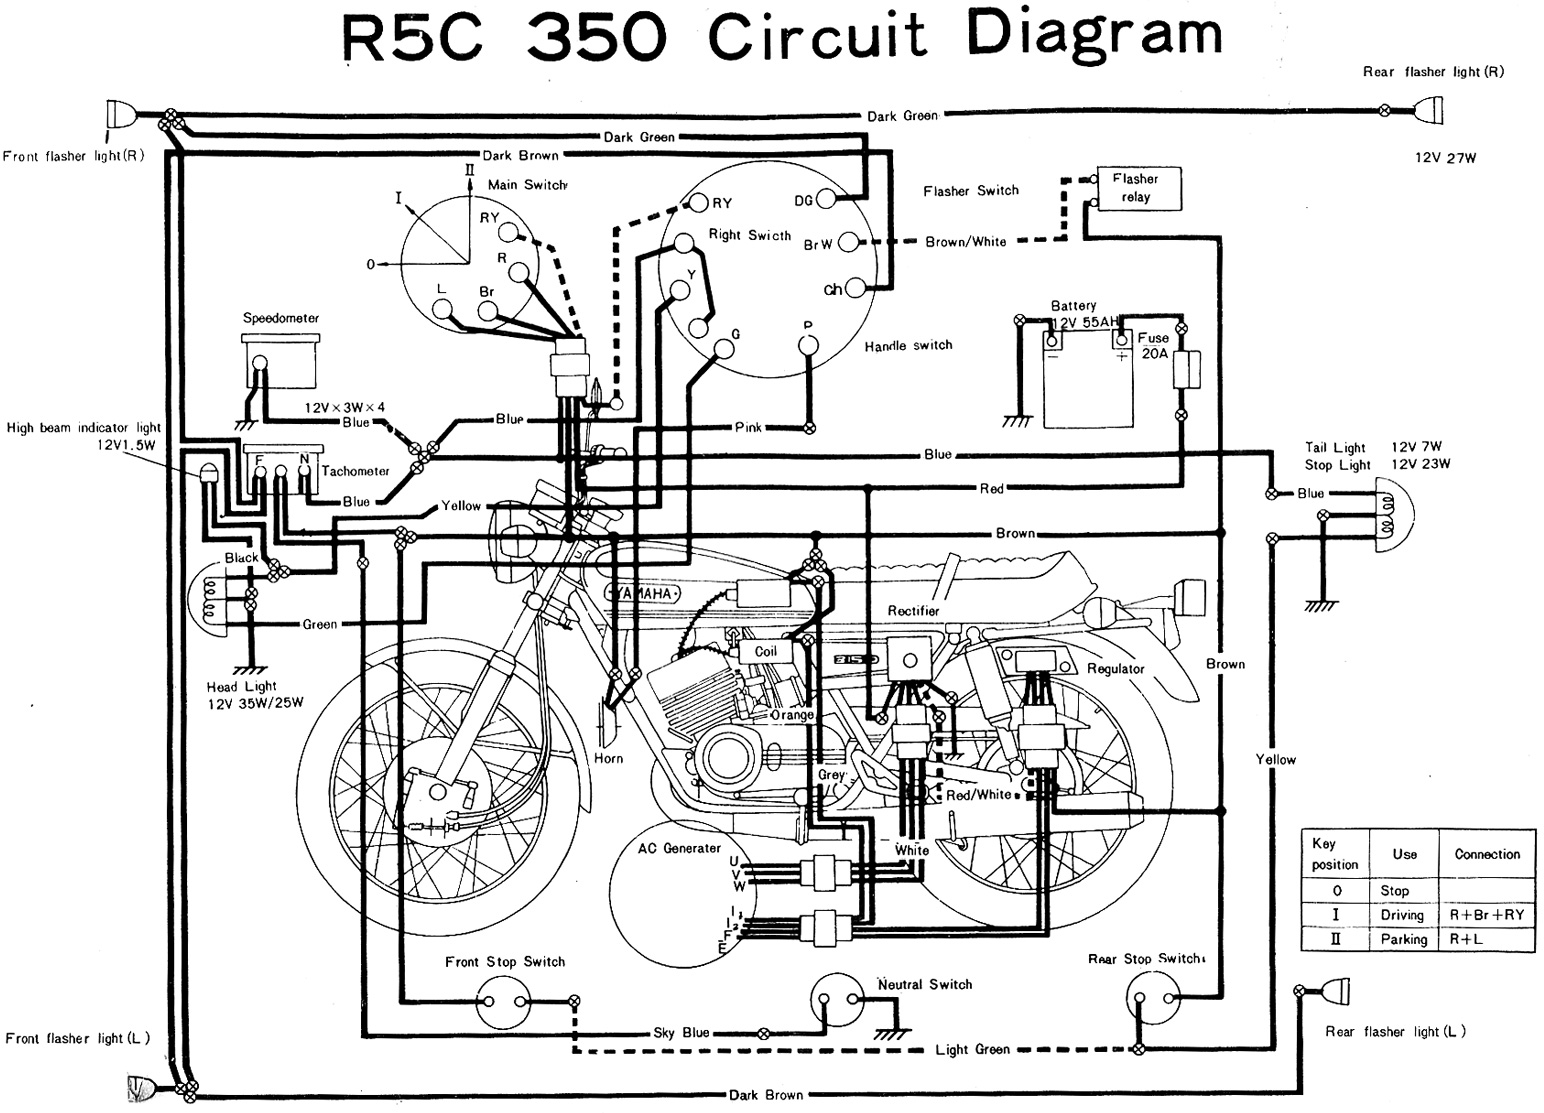 Jinlun Scooter Wiring Diagram in addition 1999 Chrysler Lhs Wiring Diagram as well IG0b 16438 besides 2007 Polaris Outlaw 525 Wiring Diagrams also Wiring Diagram 2006 Ktm 200 Exc. on ktm wiring diagrams